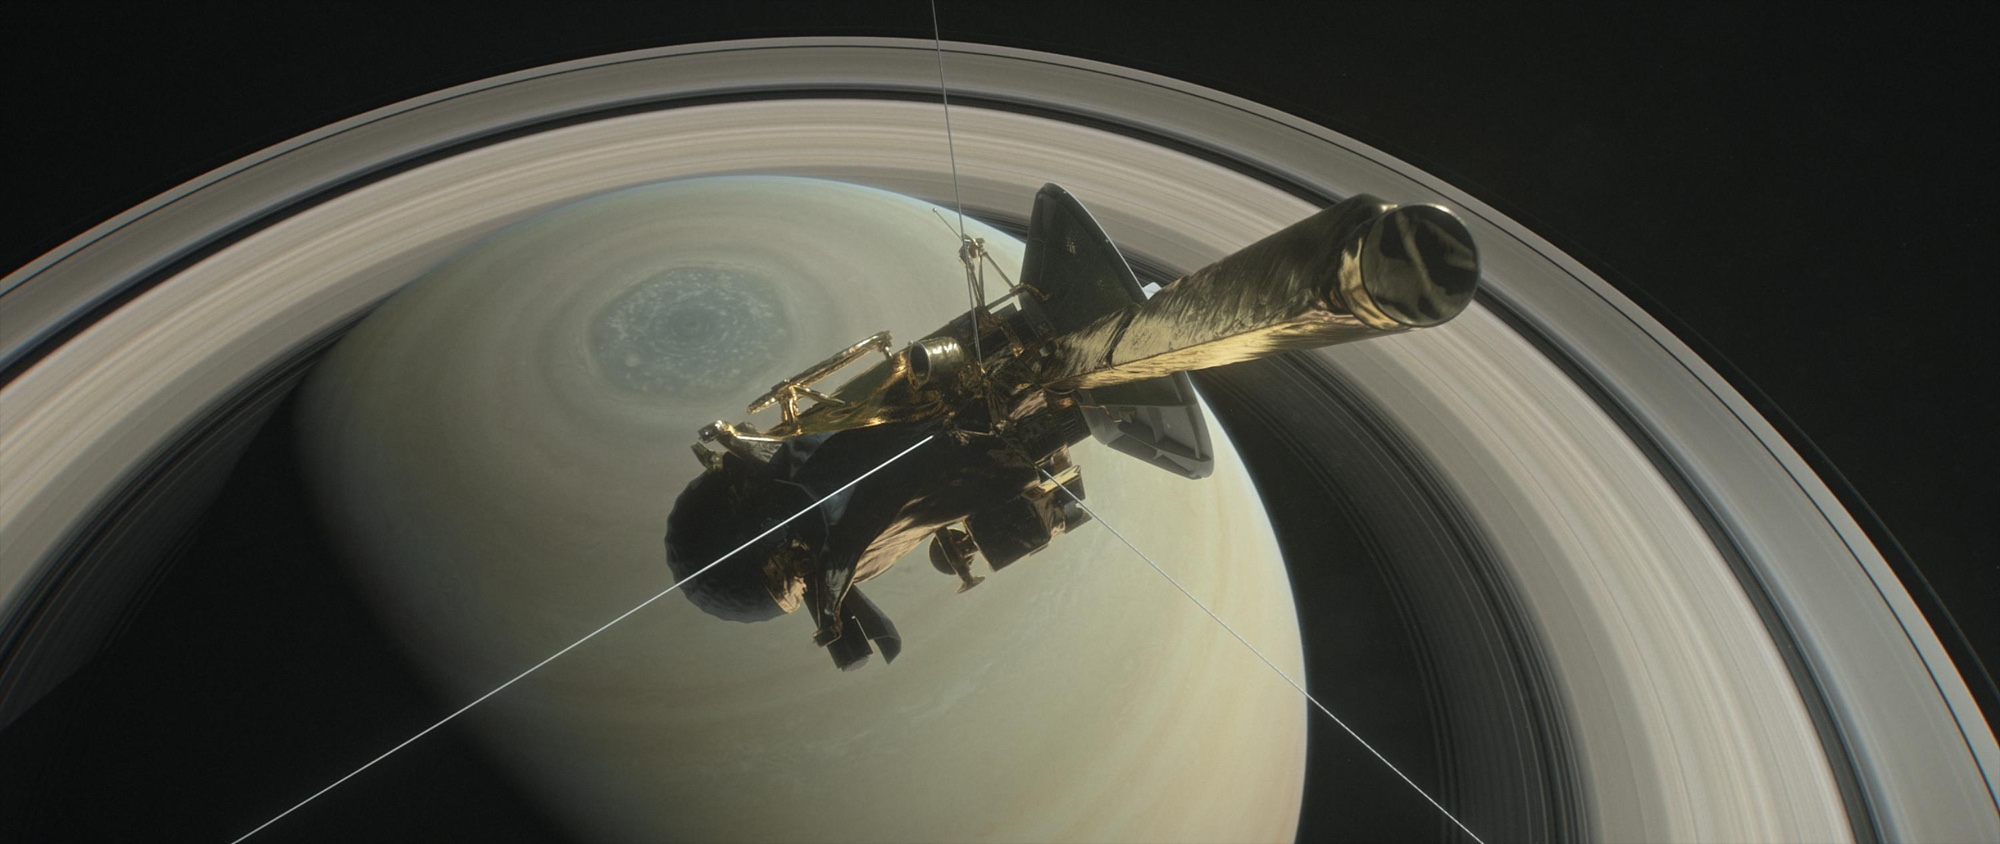 NASA Cassini Spacecraft Makes Final Approach to Saturn, 'Grand Finale' set for Fri. Sep. 15